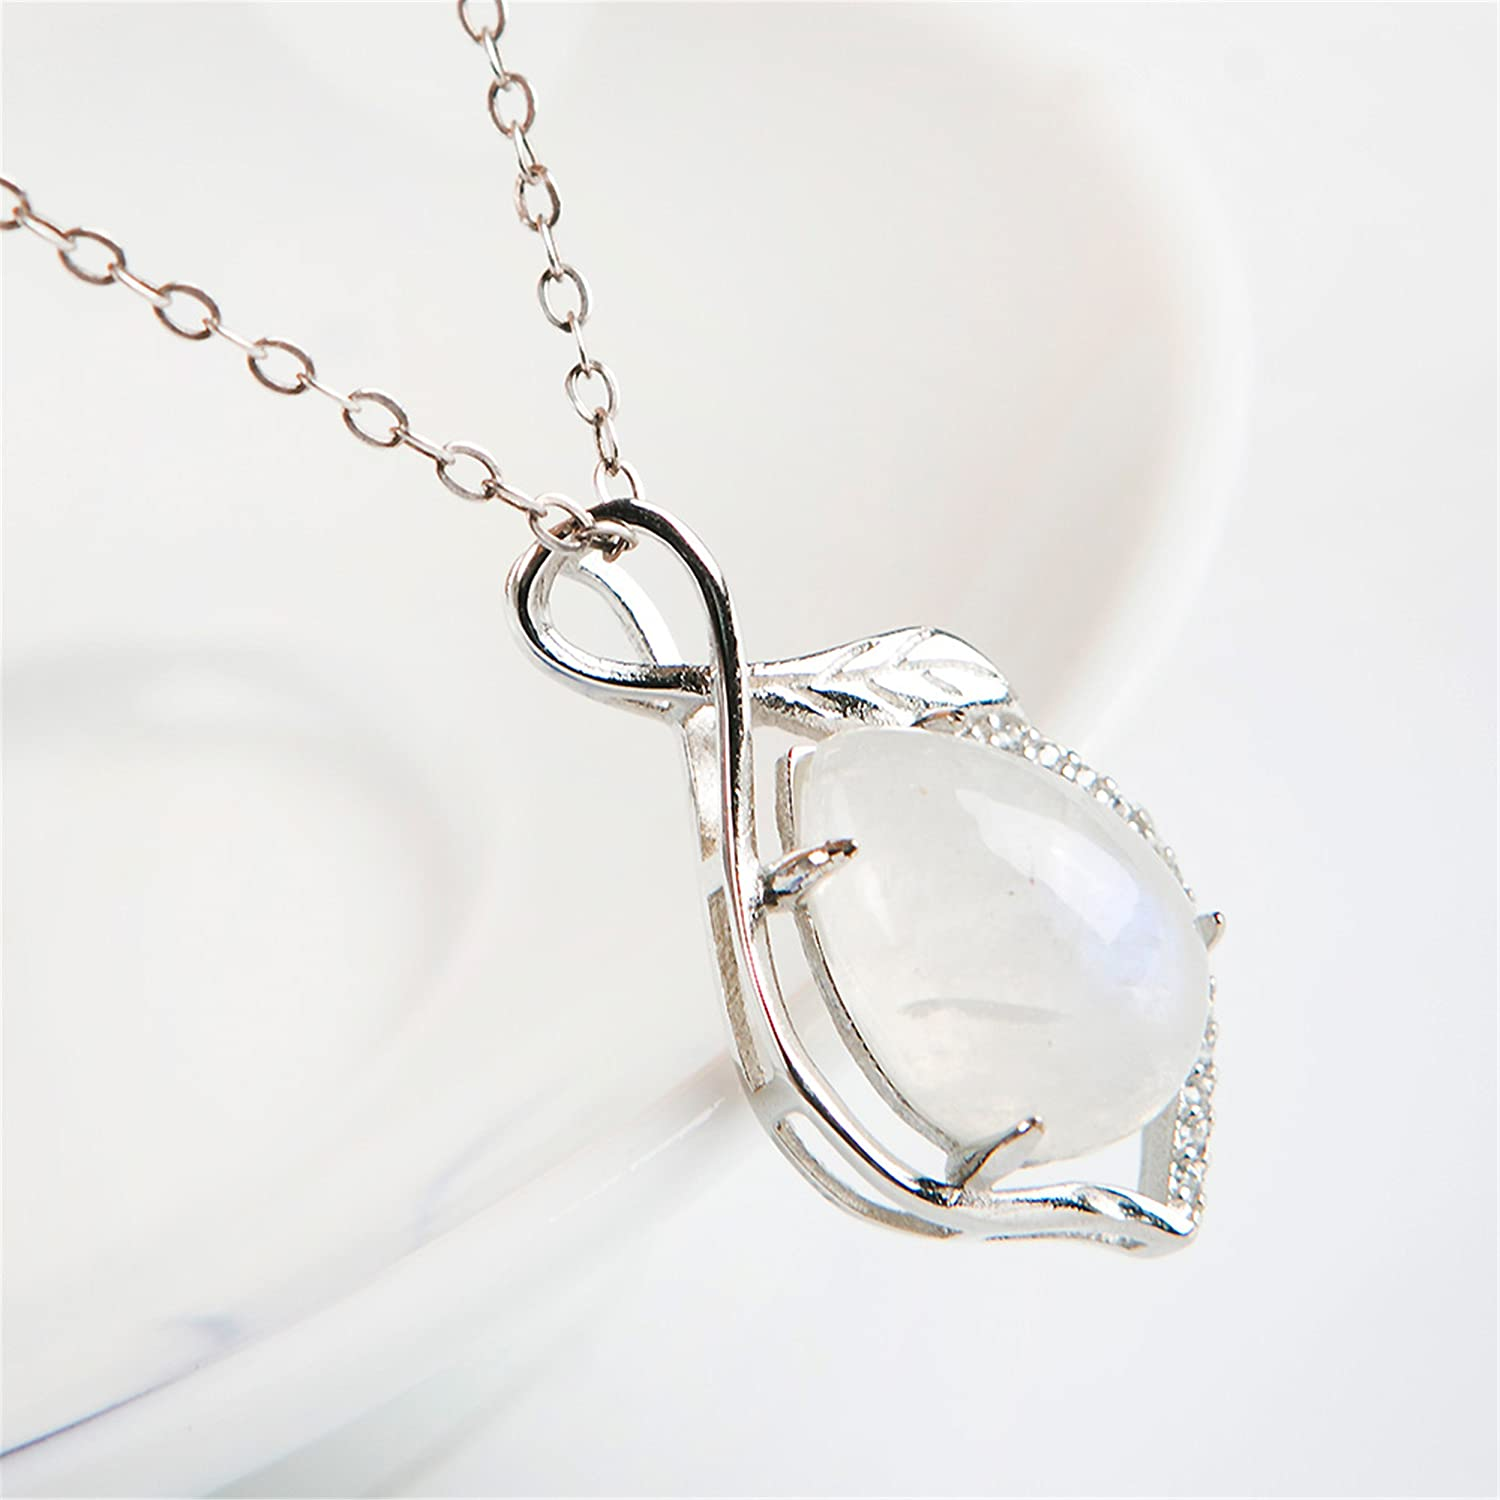 LiZiFang Genuine Natural Moonstone Crystal Silver Jeweley Necklace Pendant 14x11x6mm